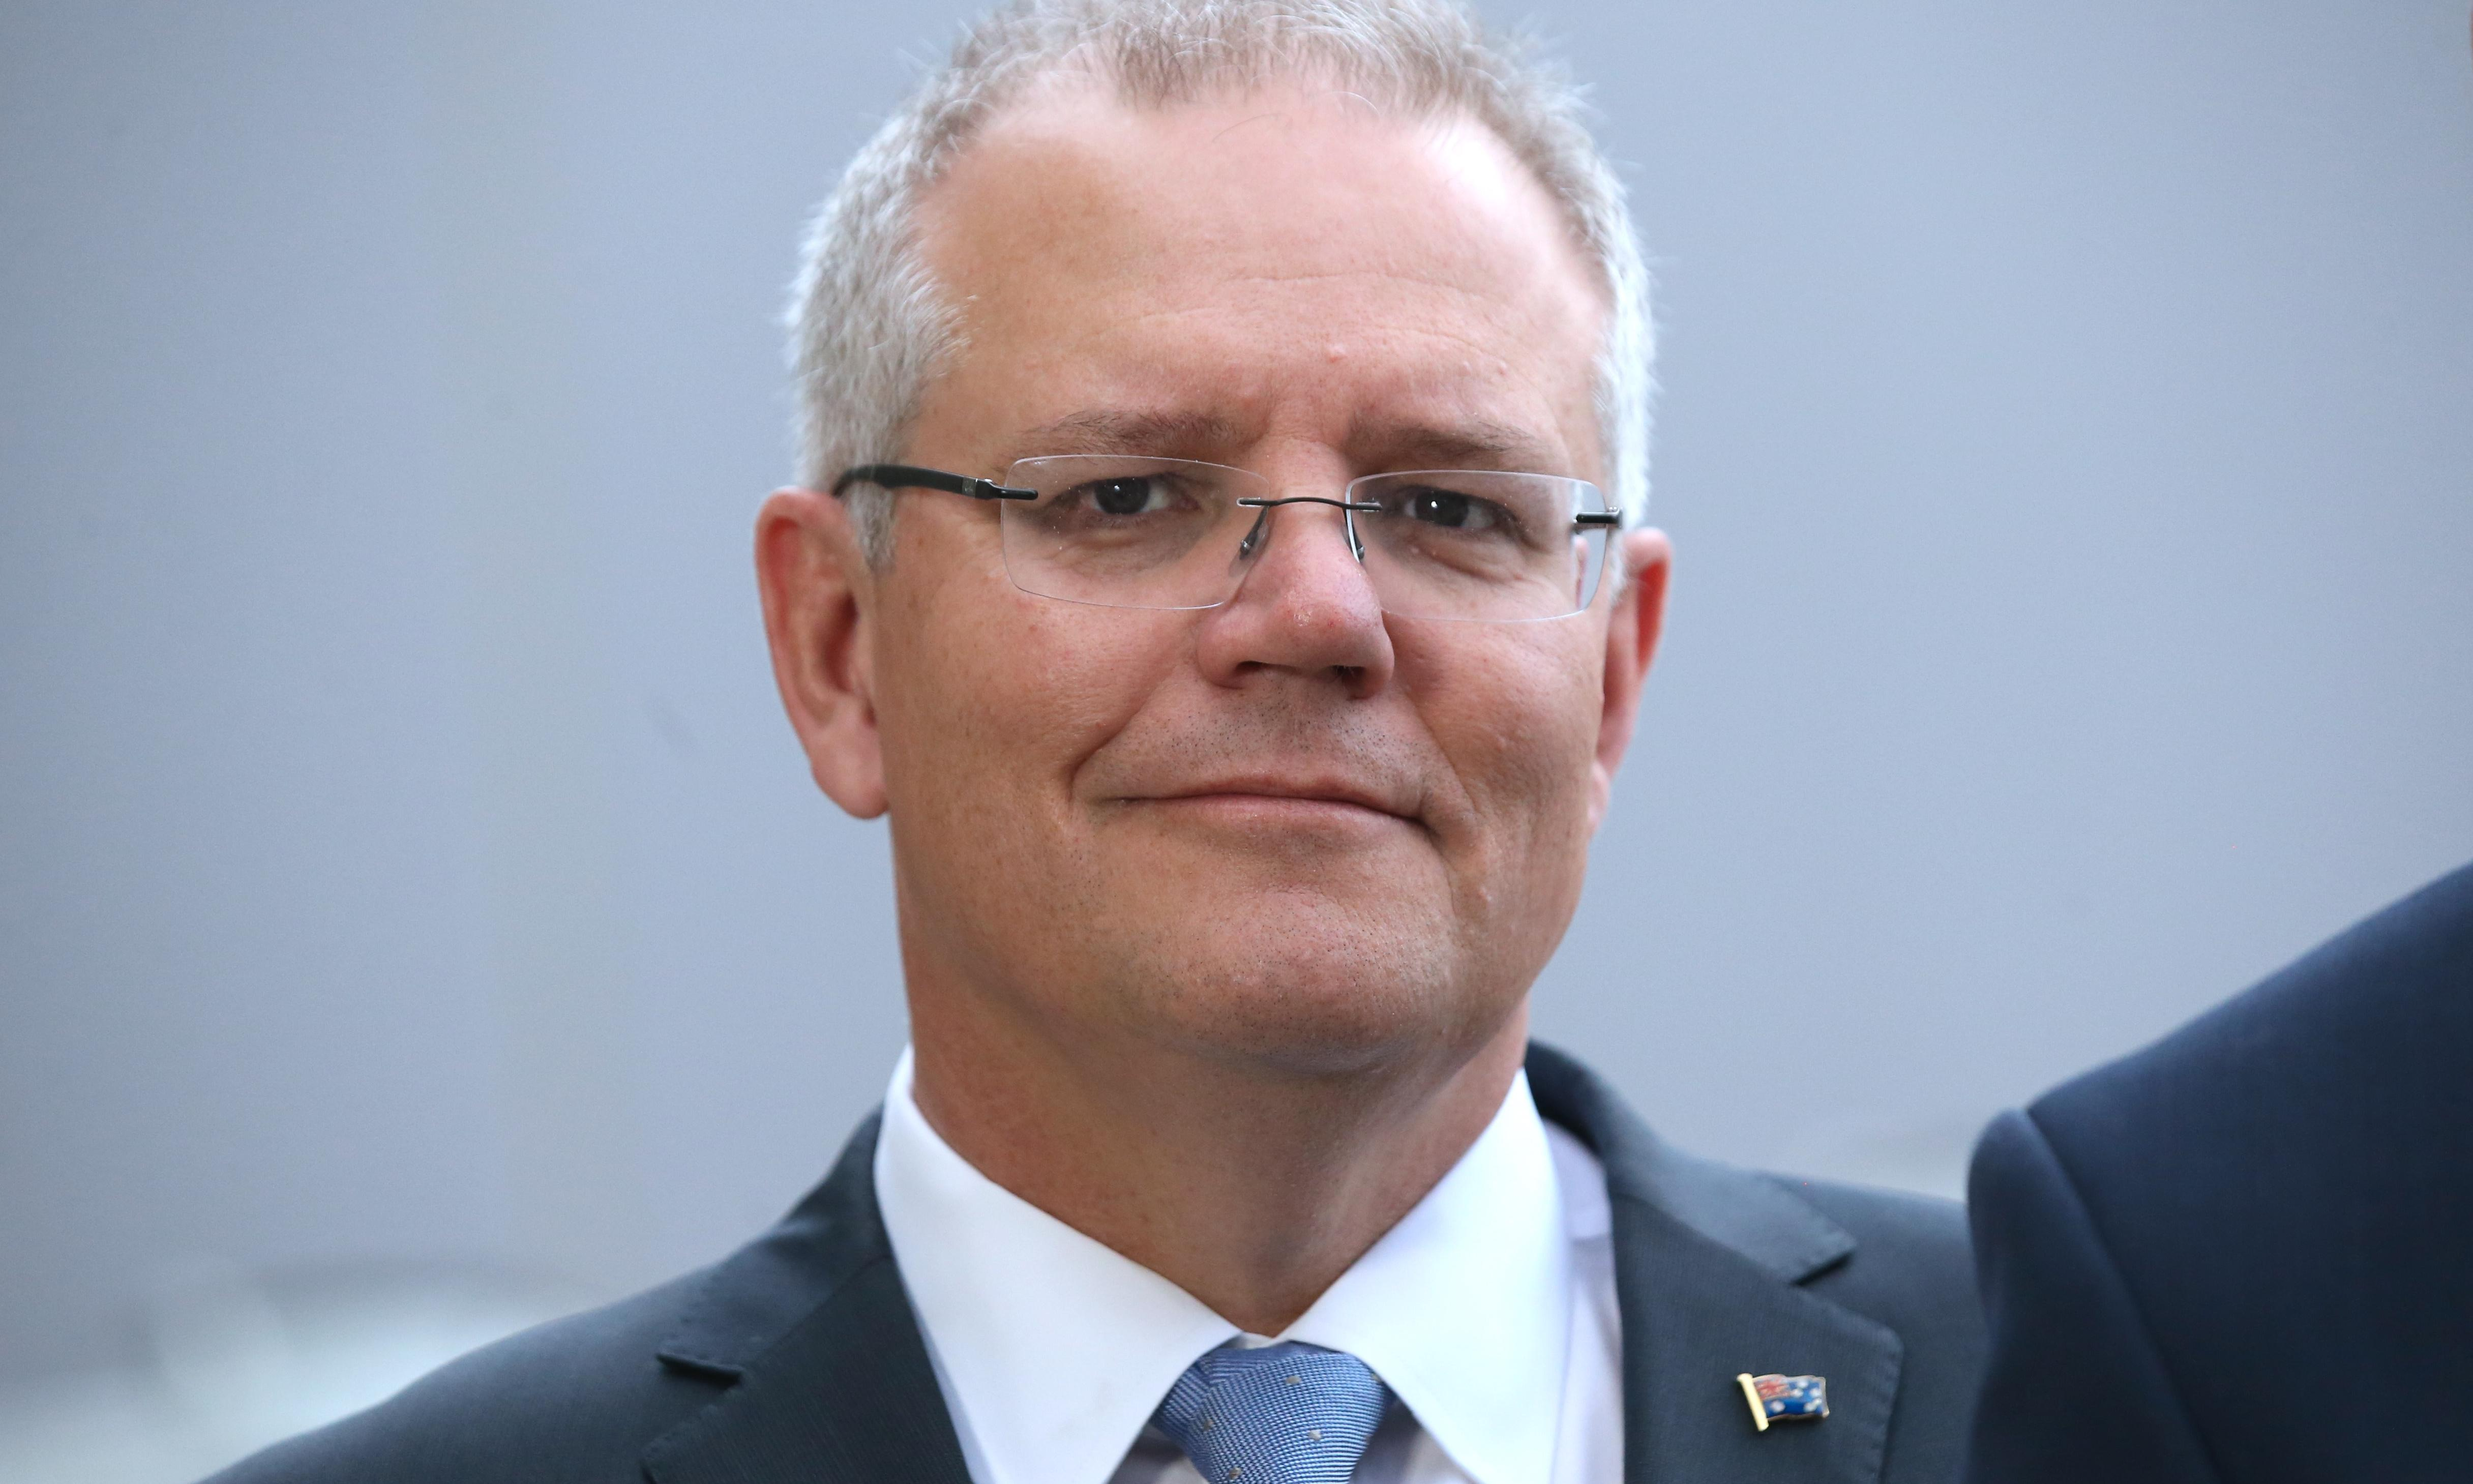 Scott Morrison has no choice. He's got to blast forward and hope for the best